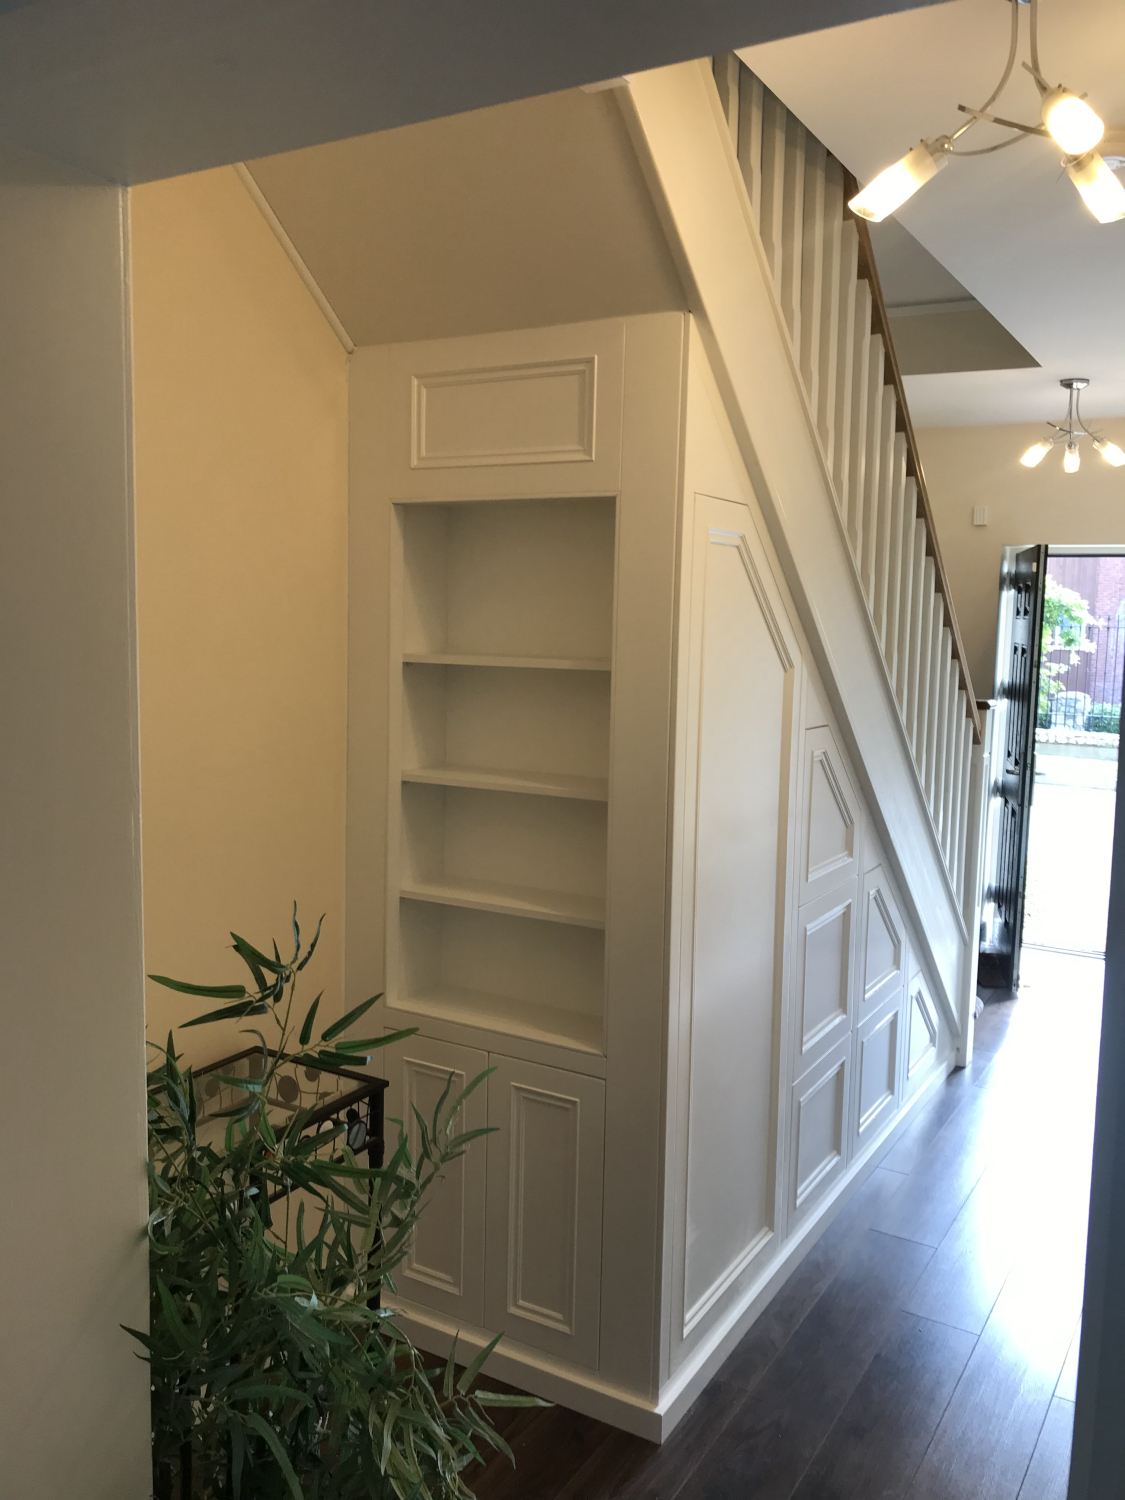 Large six drawer unit with door and slide out coat rack along with a bookcase on the end